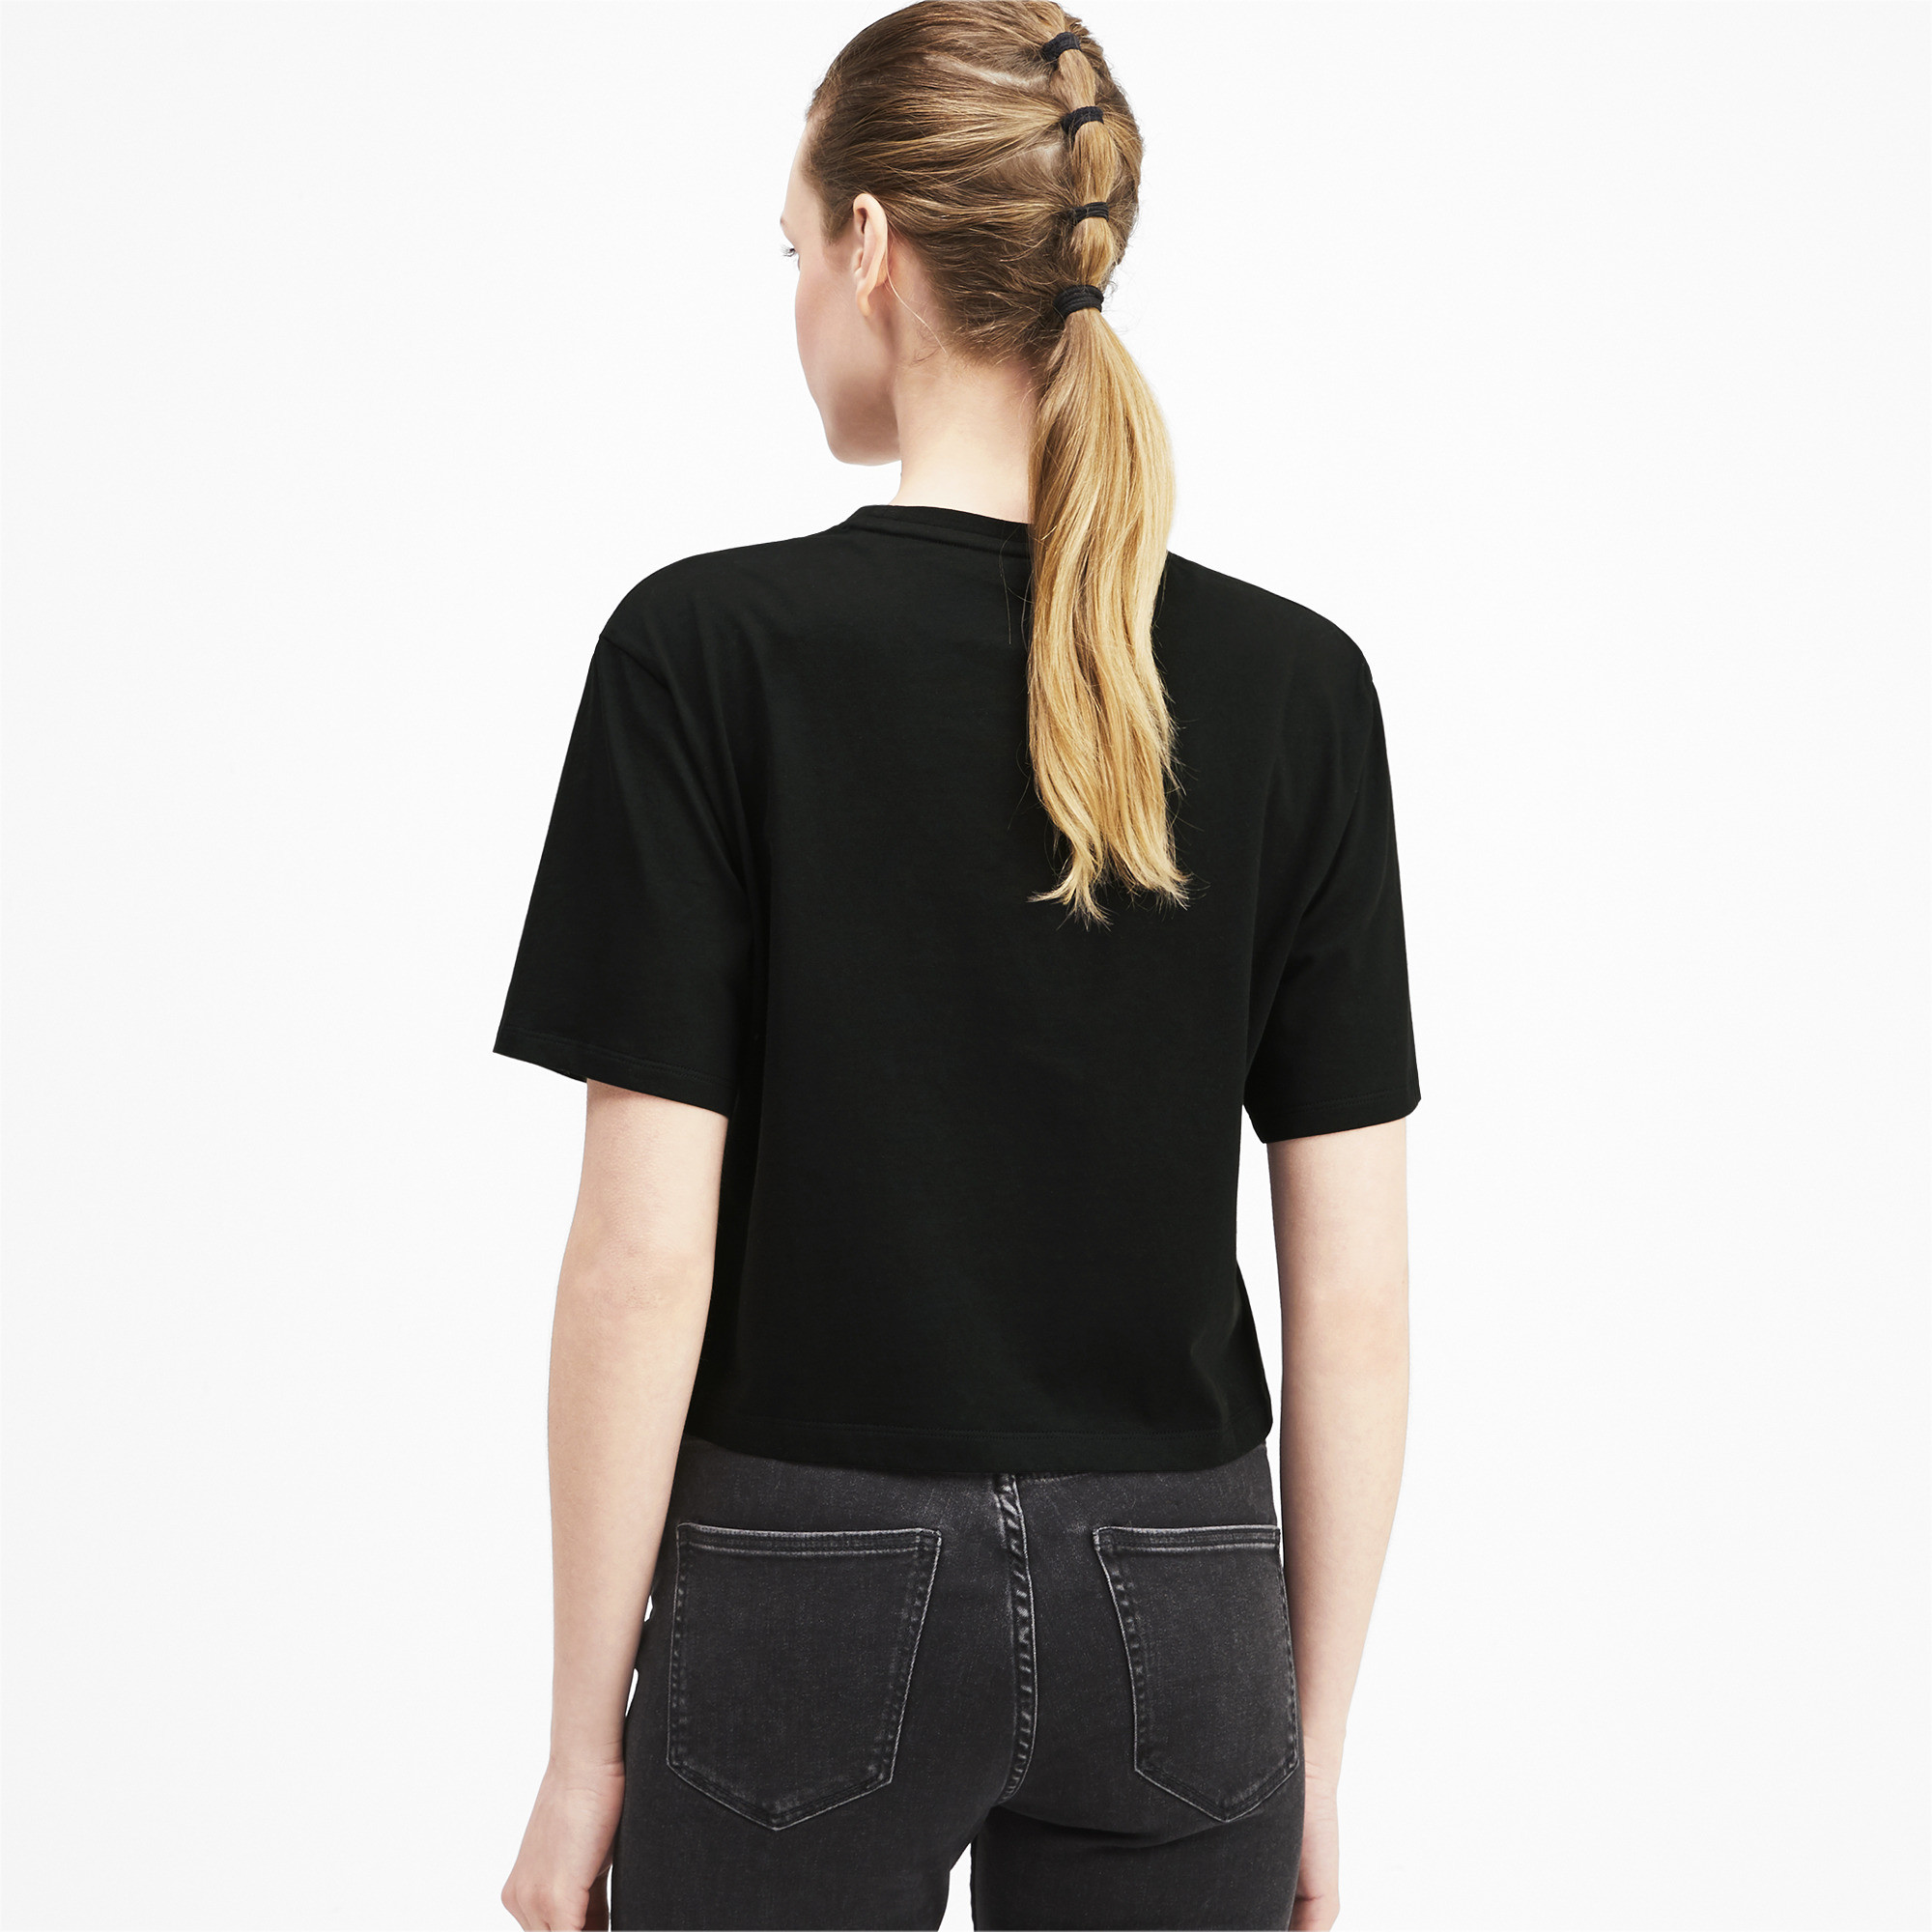 PUMA-Women-039-s-Cropped-Logo-Tee-Women-Crop-Top-Basics thumbnail 17